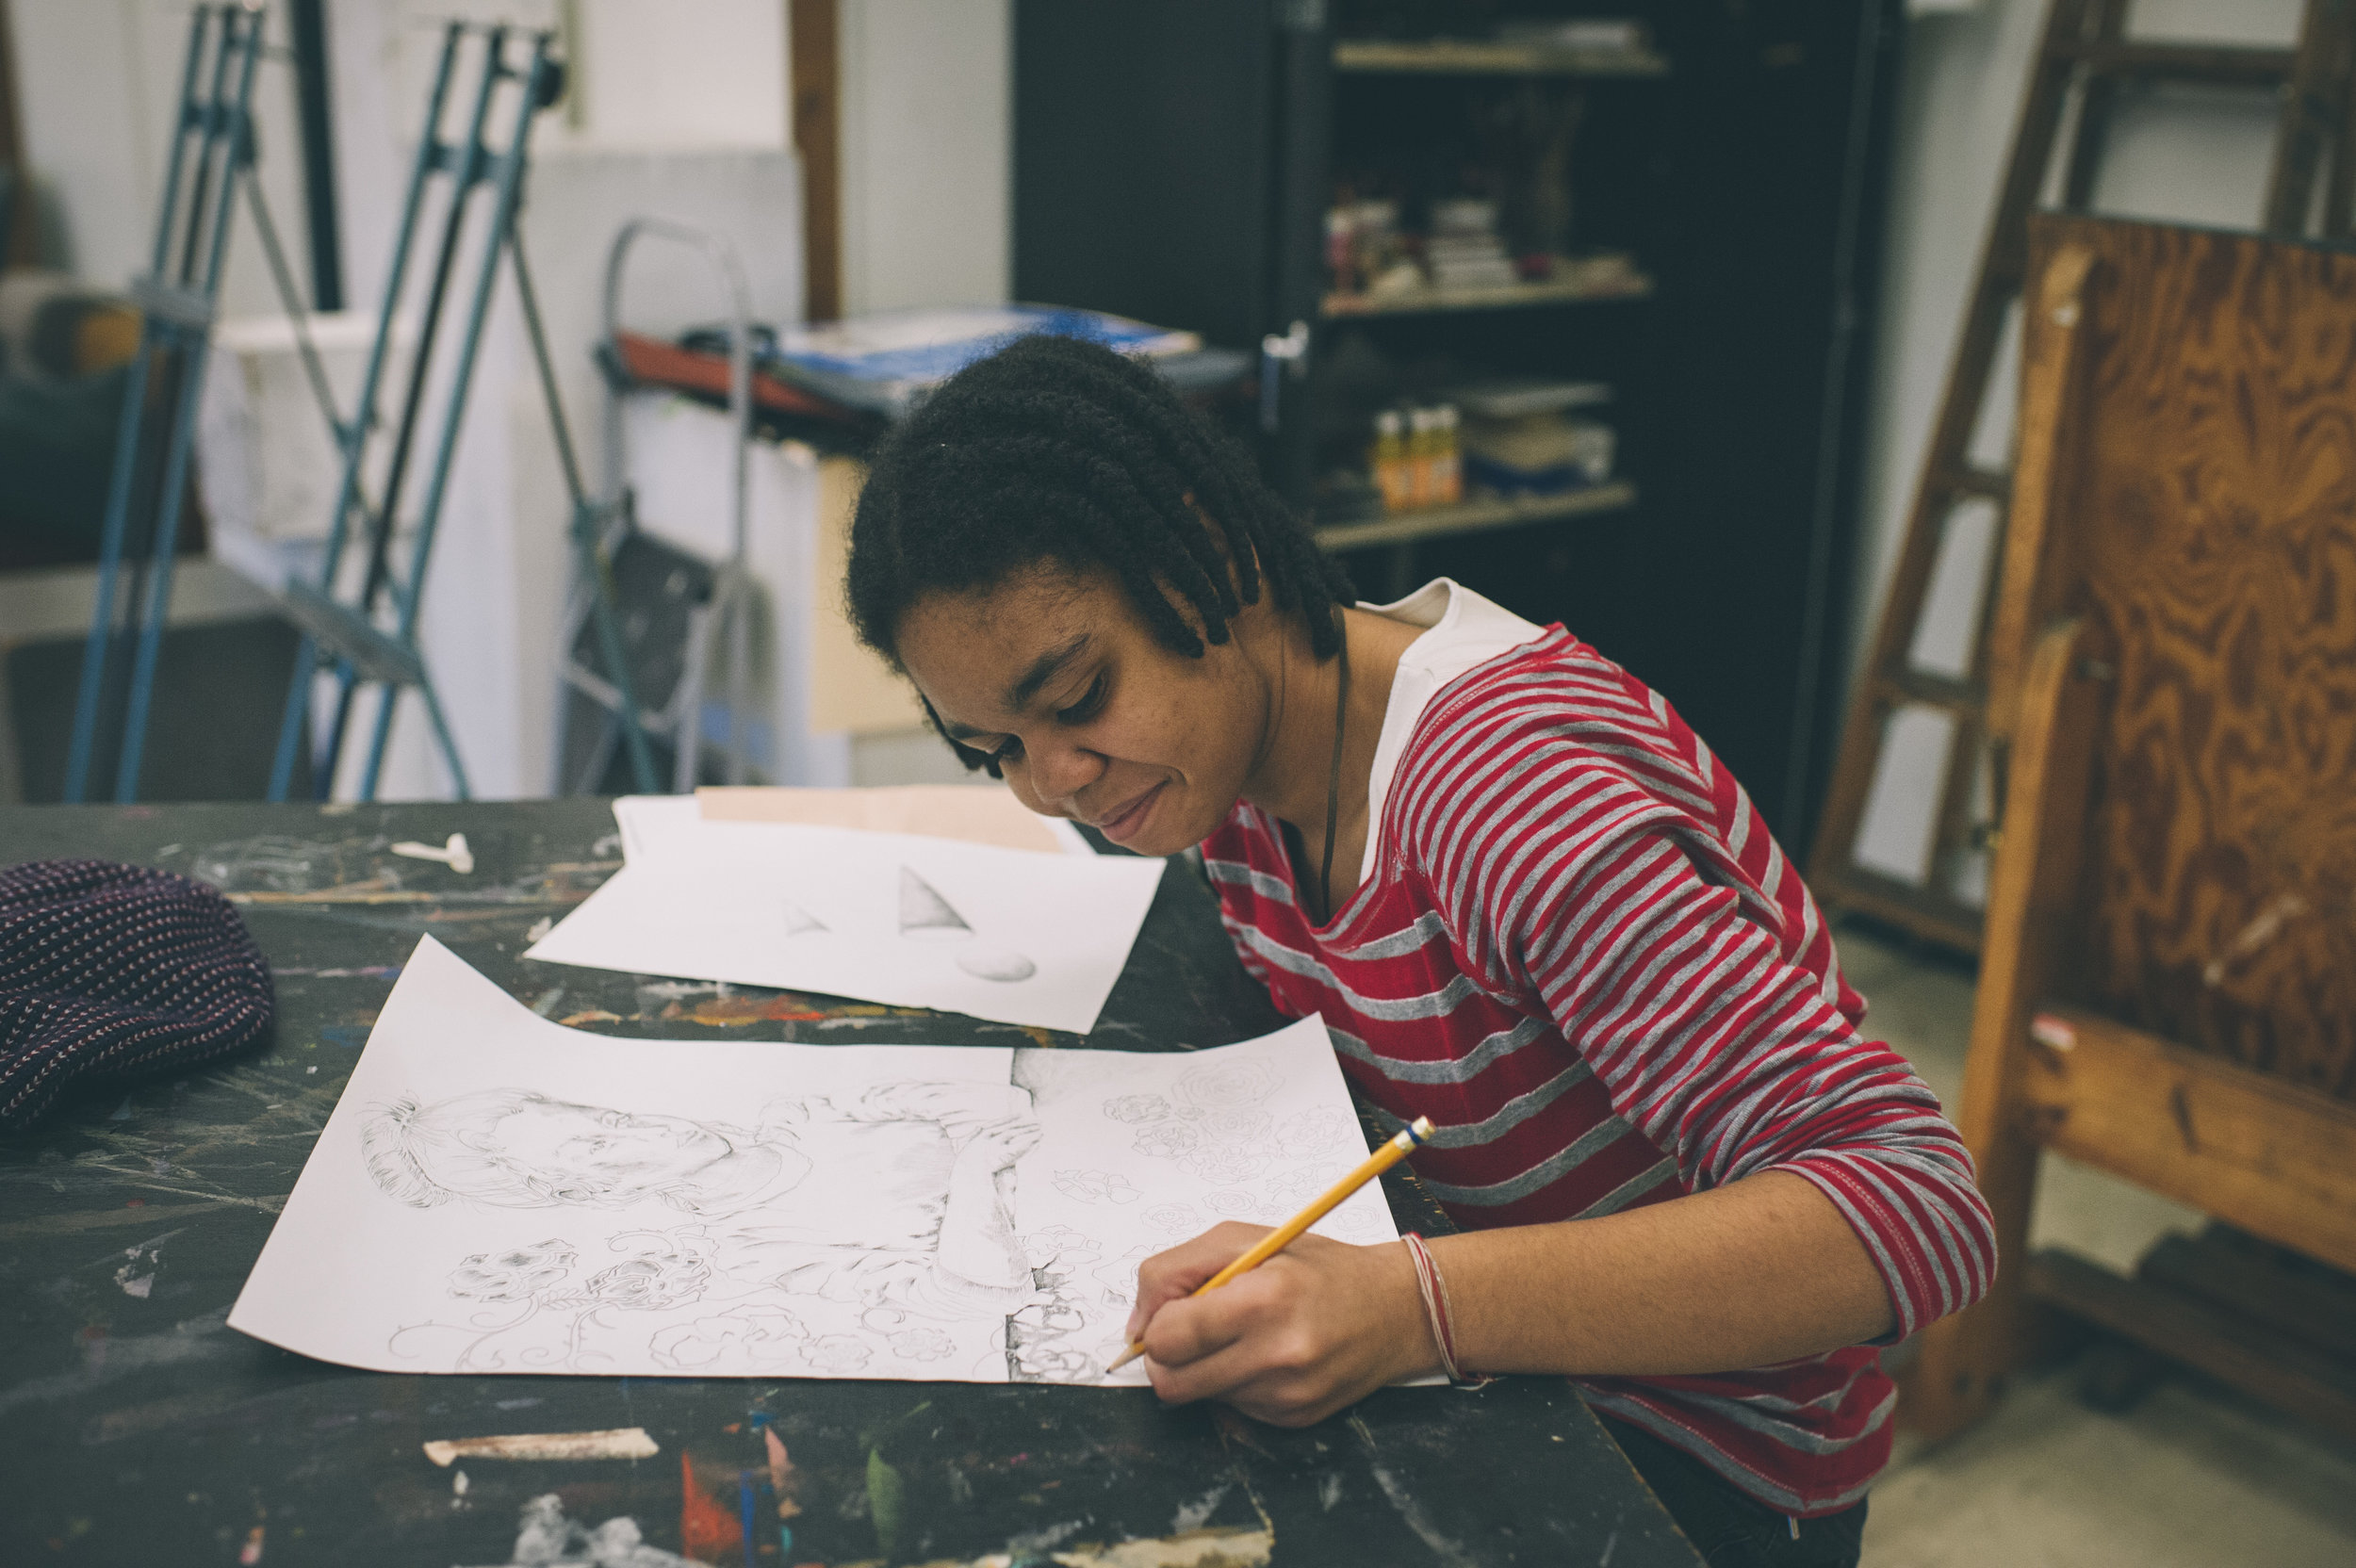 Student, Mayteana Williams working on a drawing.